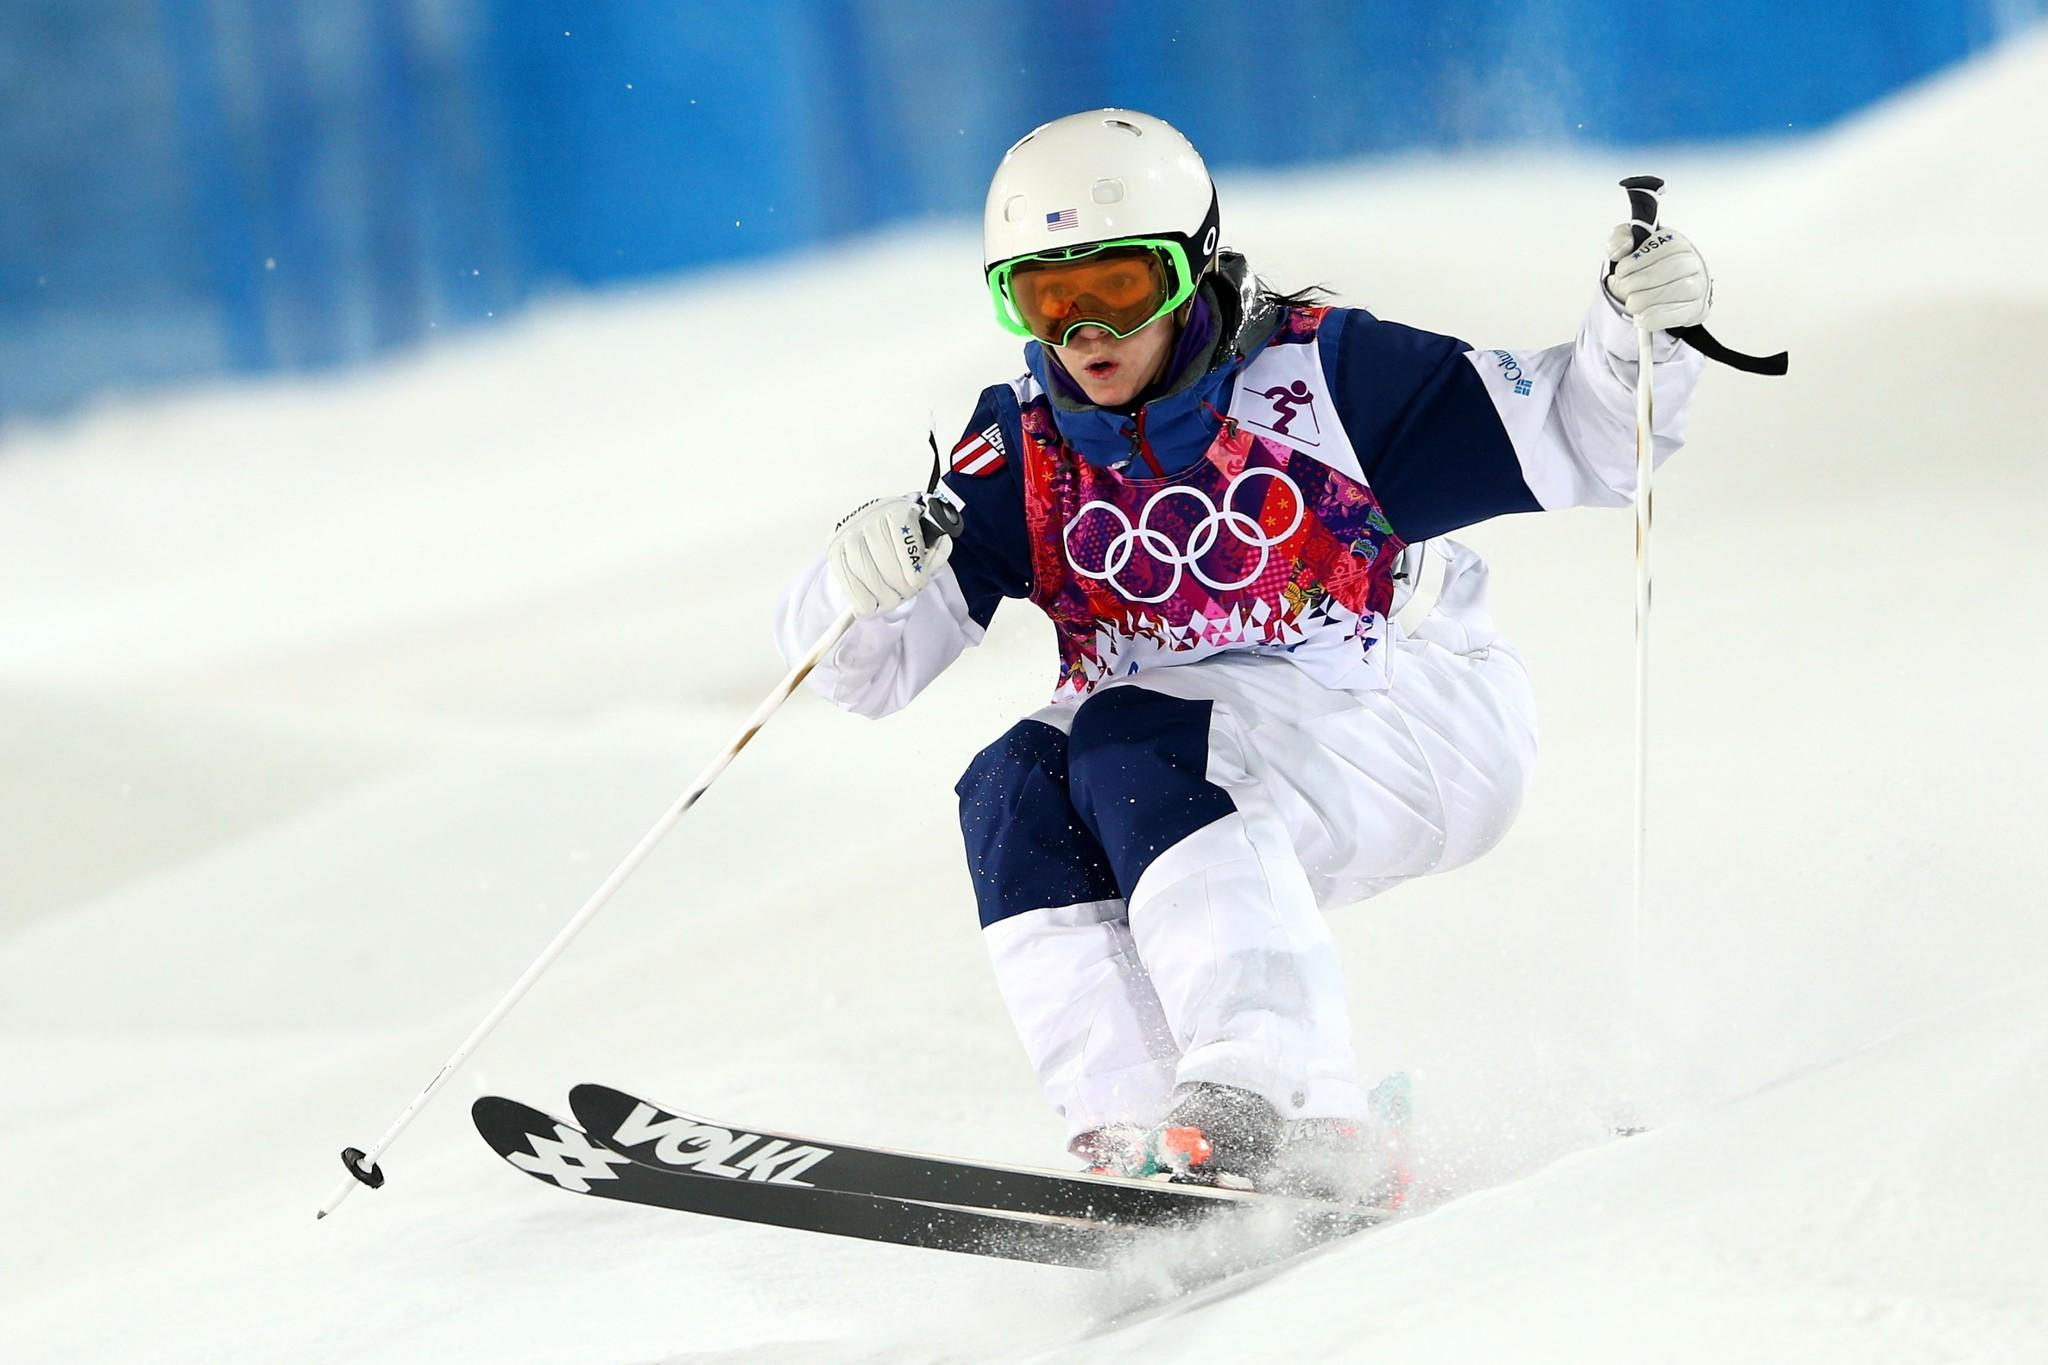 Eliza Outtrim finished sixth in the women's moguls on Saturday at the Sochi Winter Olympics at Rosa Khutor Extreme Park.